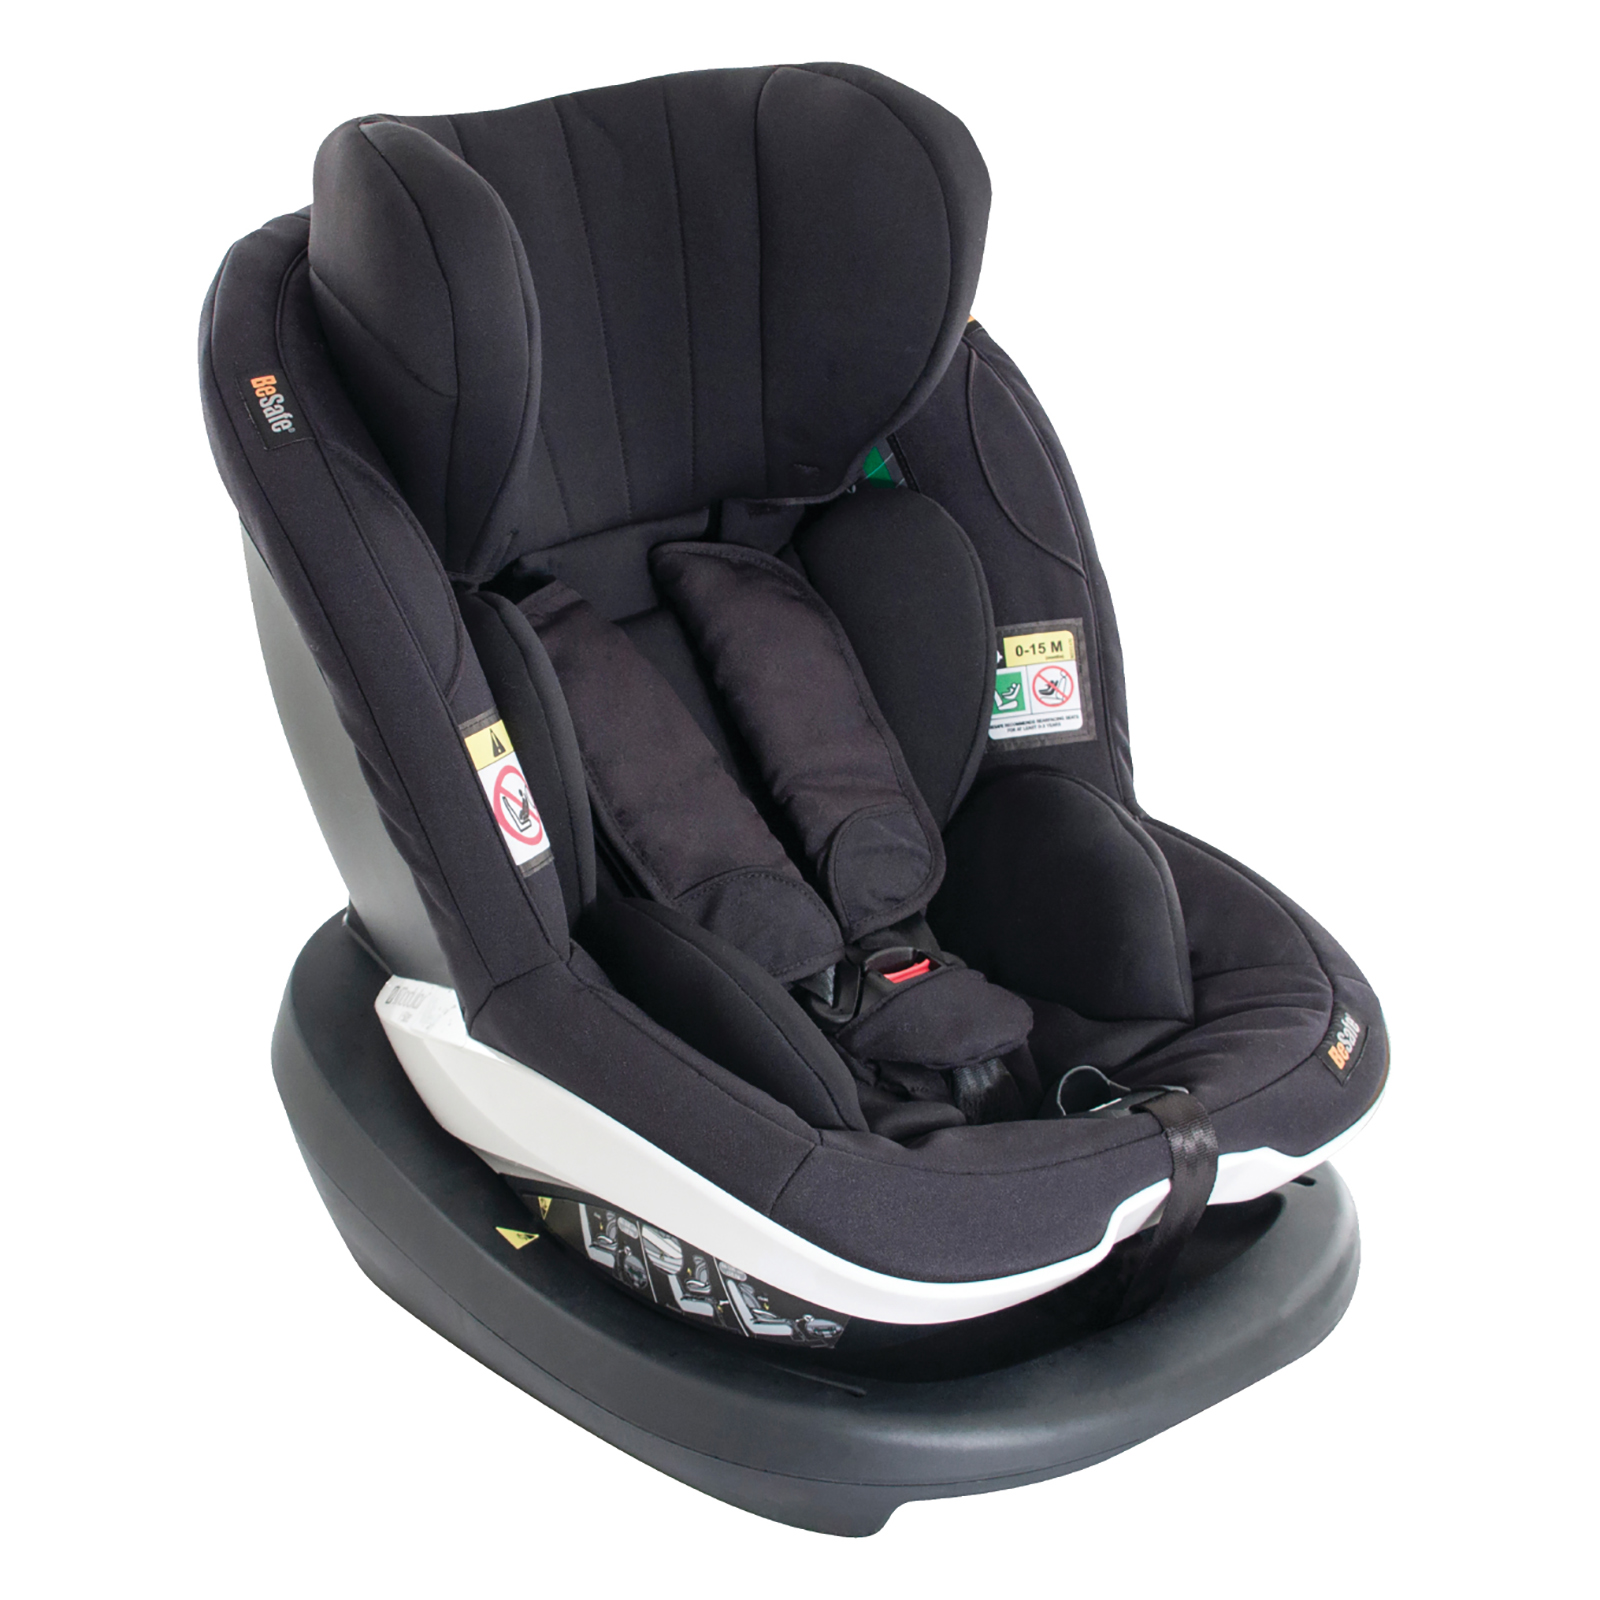 besafe izi modular i size car seat isofix base black. Black Bedroom Furniture Sets. Home Design Ideas